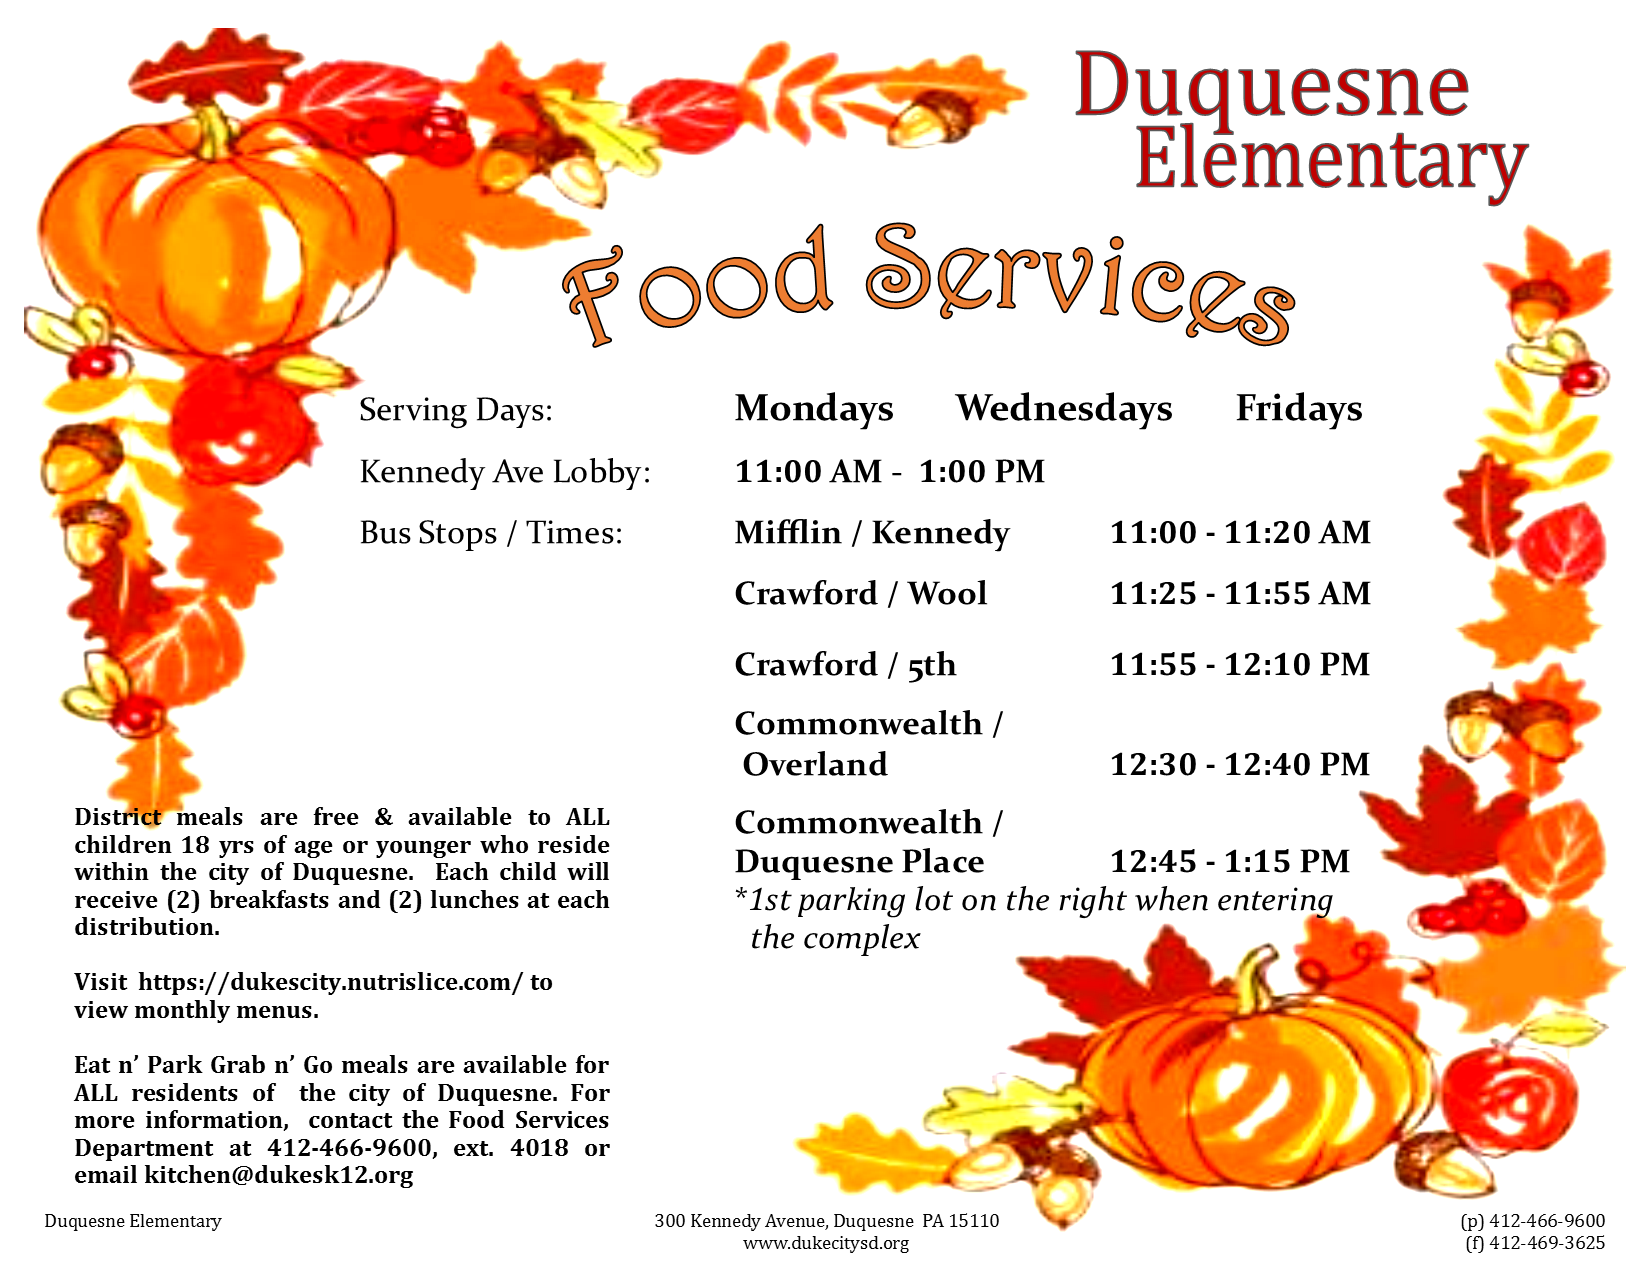 Food Services Update Mondays Wednesdays Fridays 11:00 AM to 1:00 PM and District Bus Stops